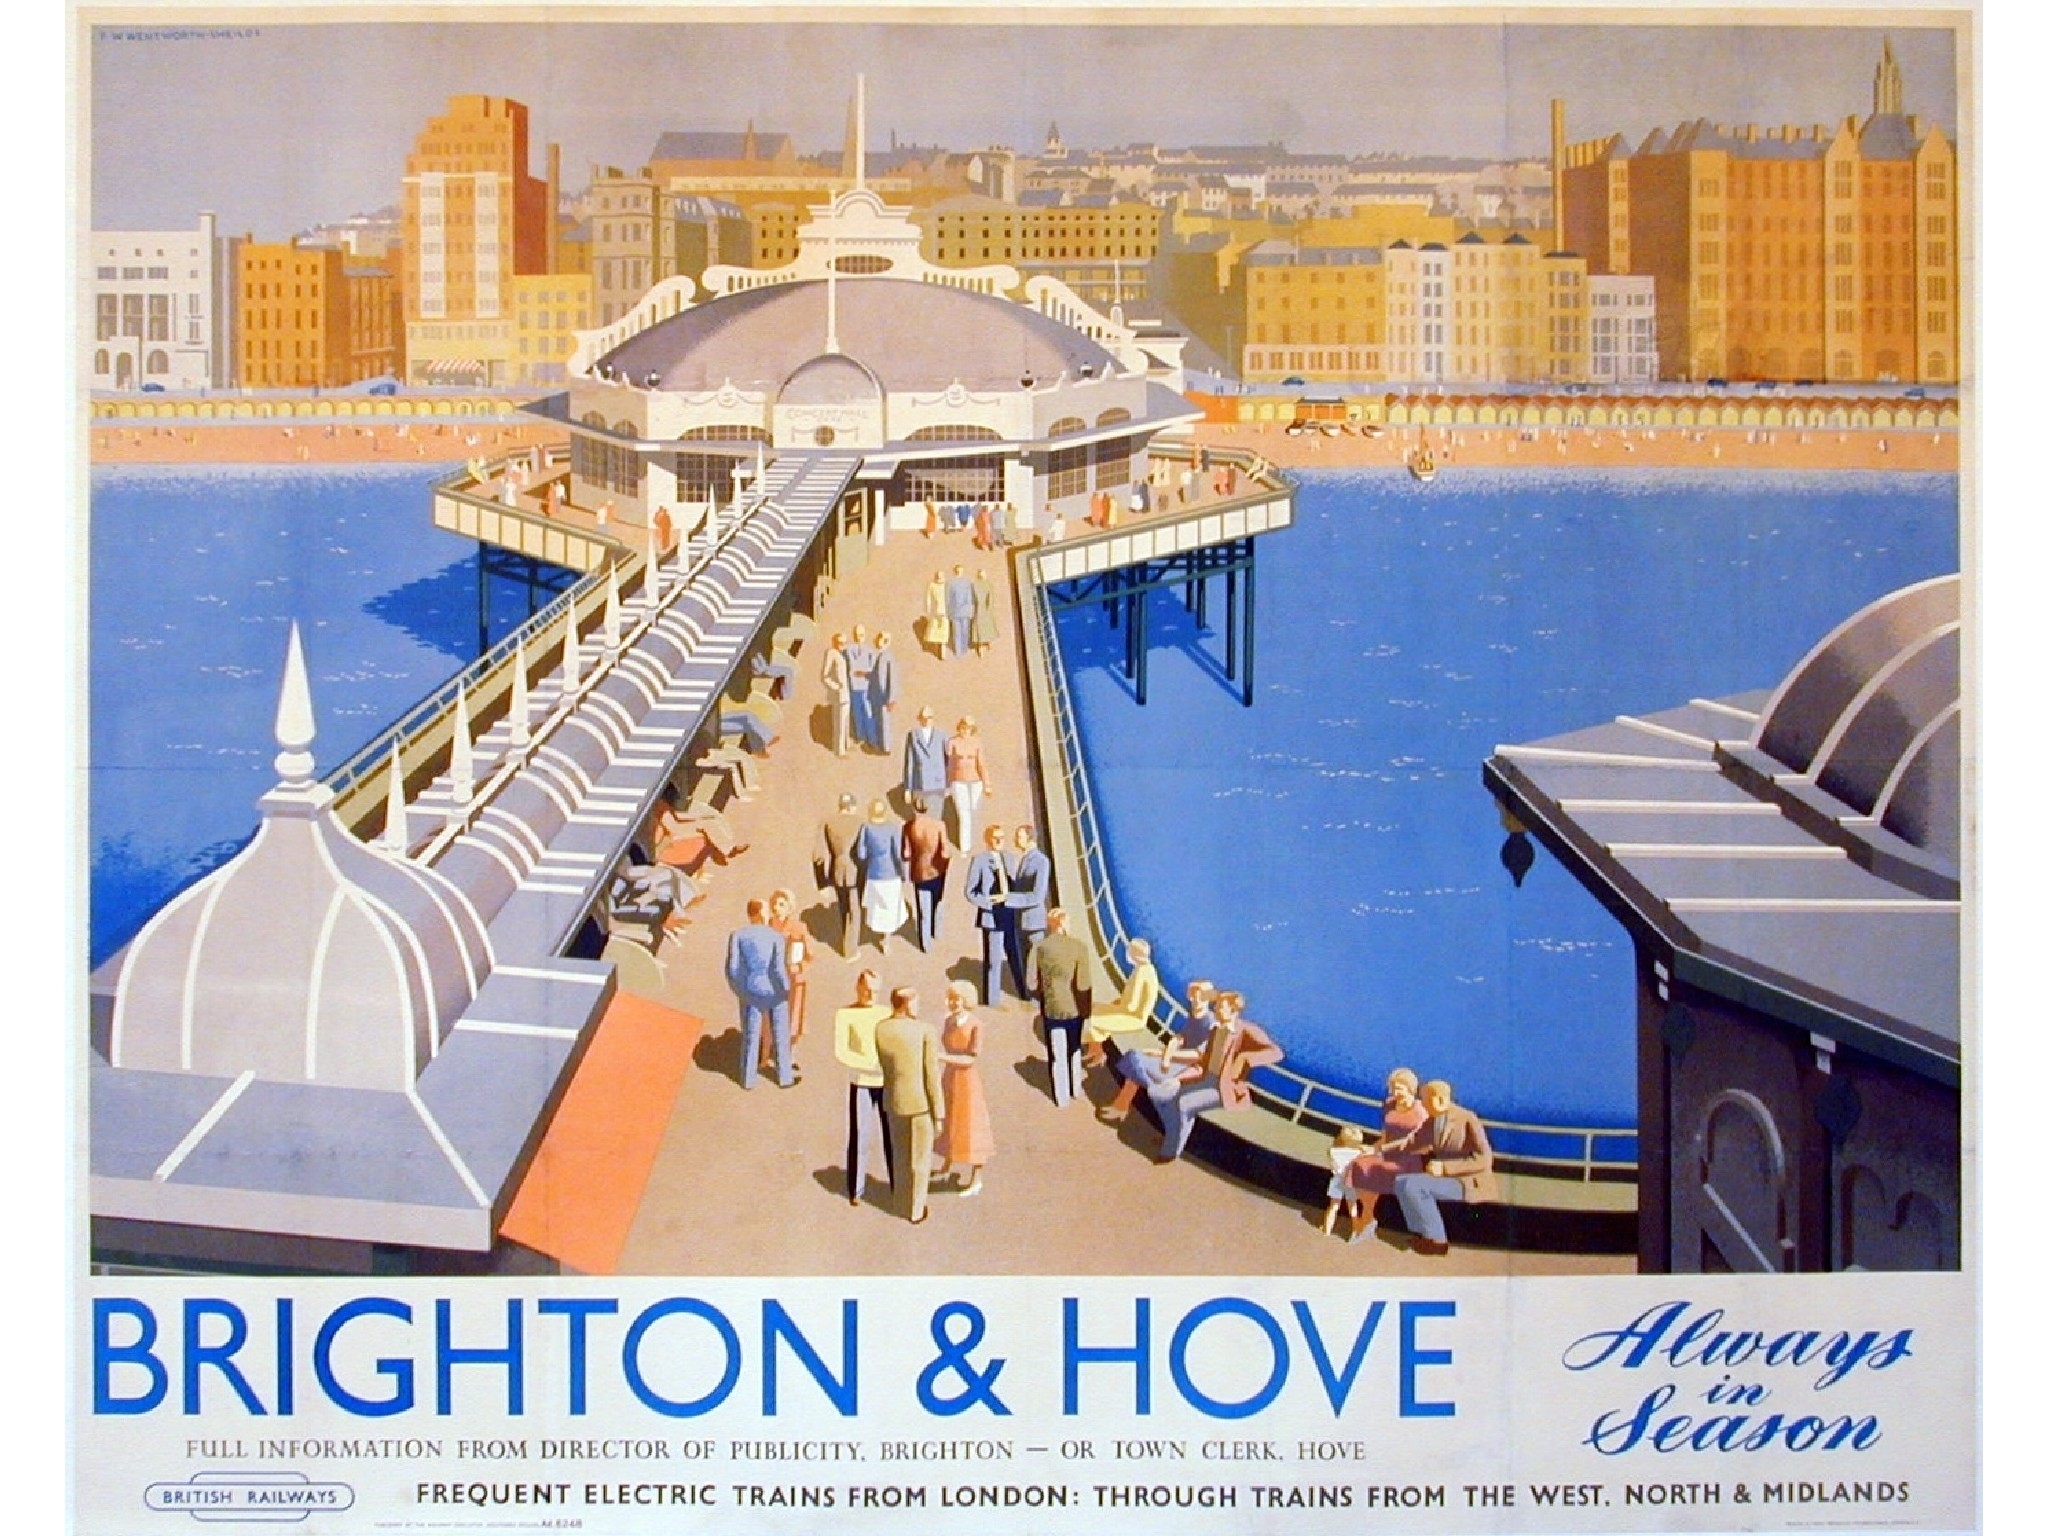 Where Old british railways posters thought